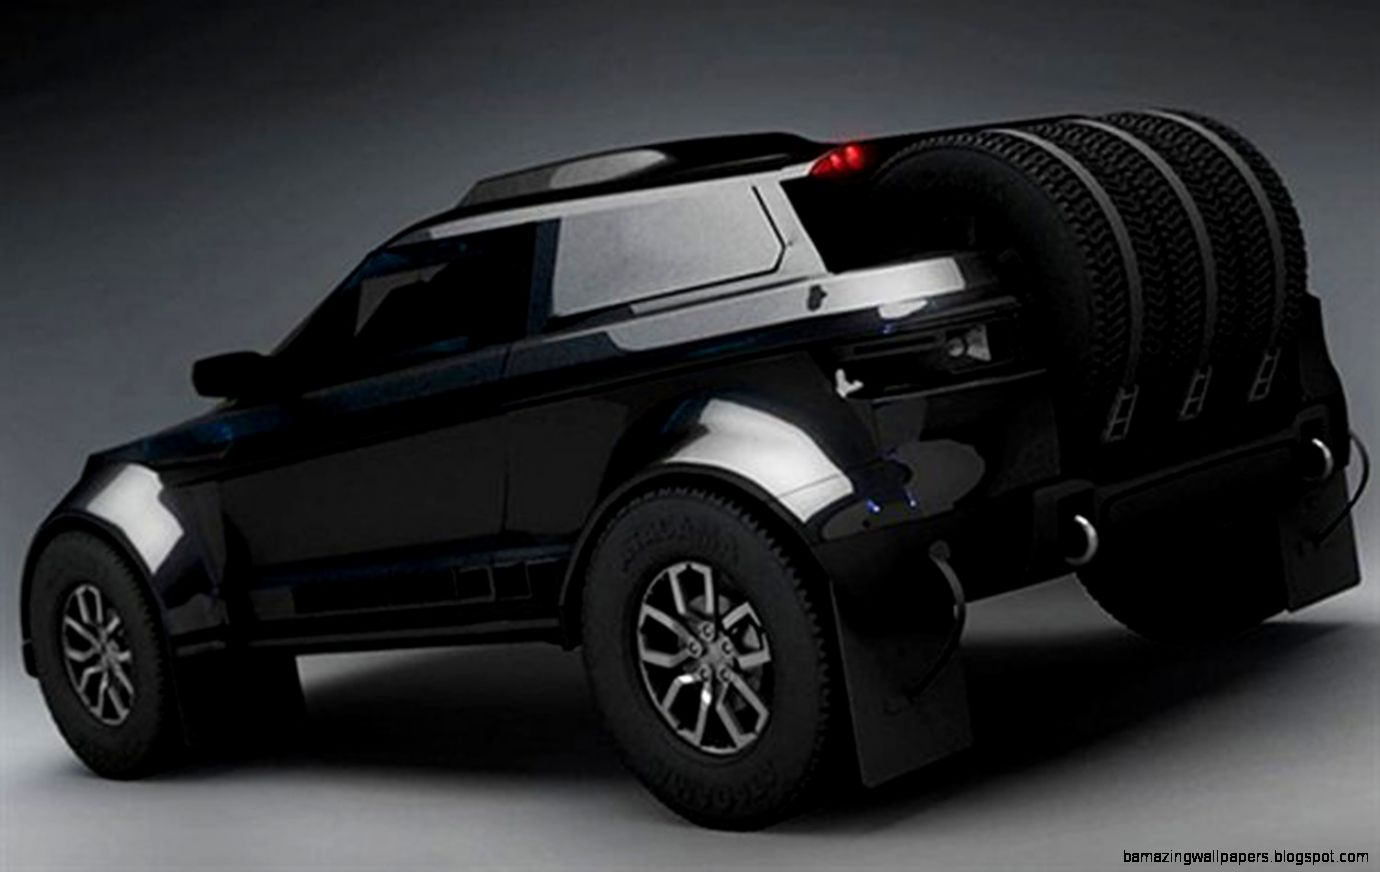 Range Rover Evoque Black 4 Door | Amazing Wallpapers